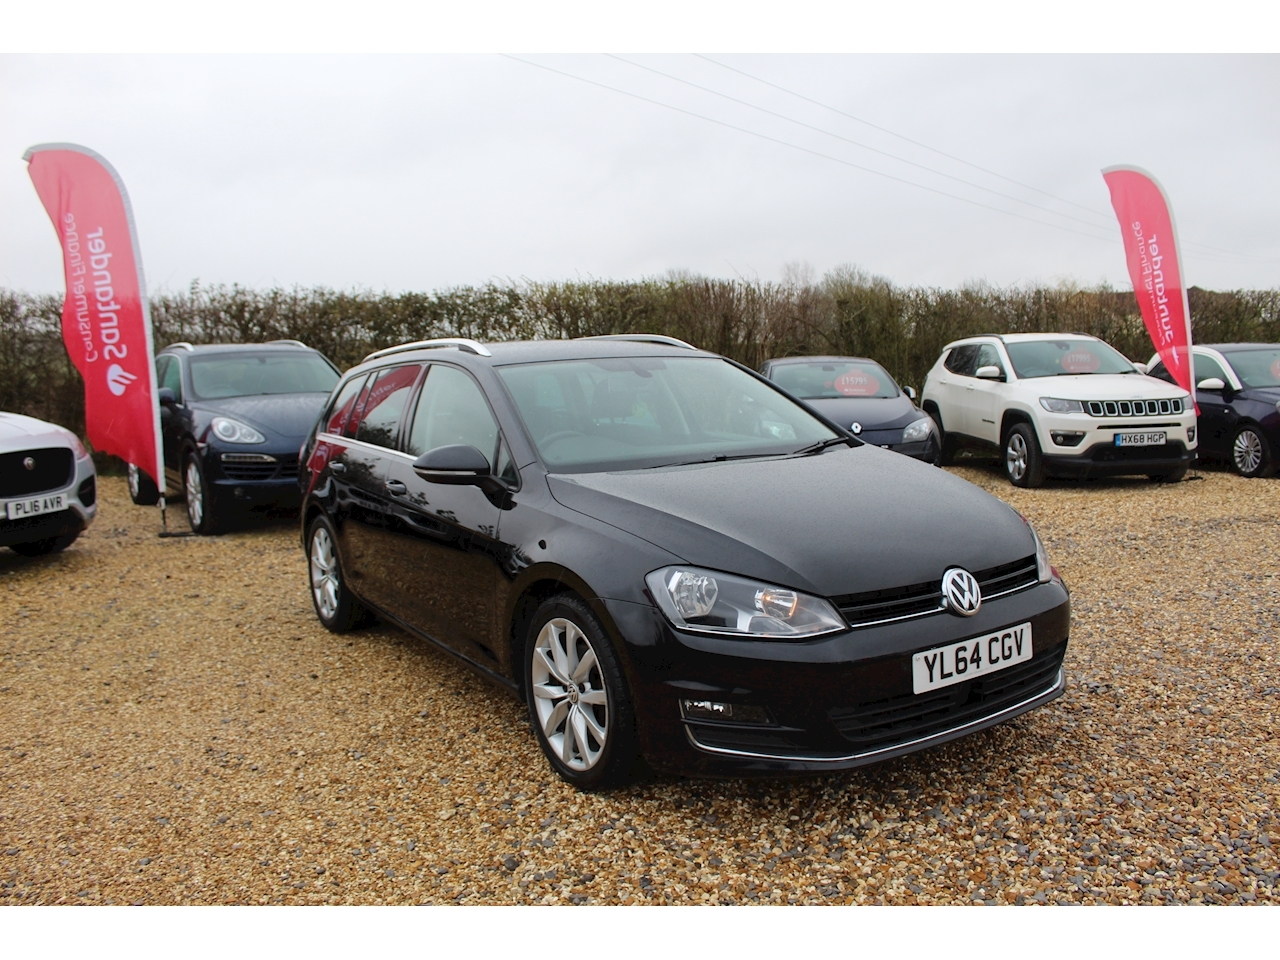 Volkswagen Golf Gt Tdi Bluemotion Technology Estate 2.0 Manual Diesel